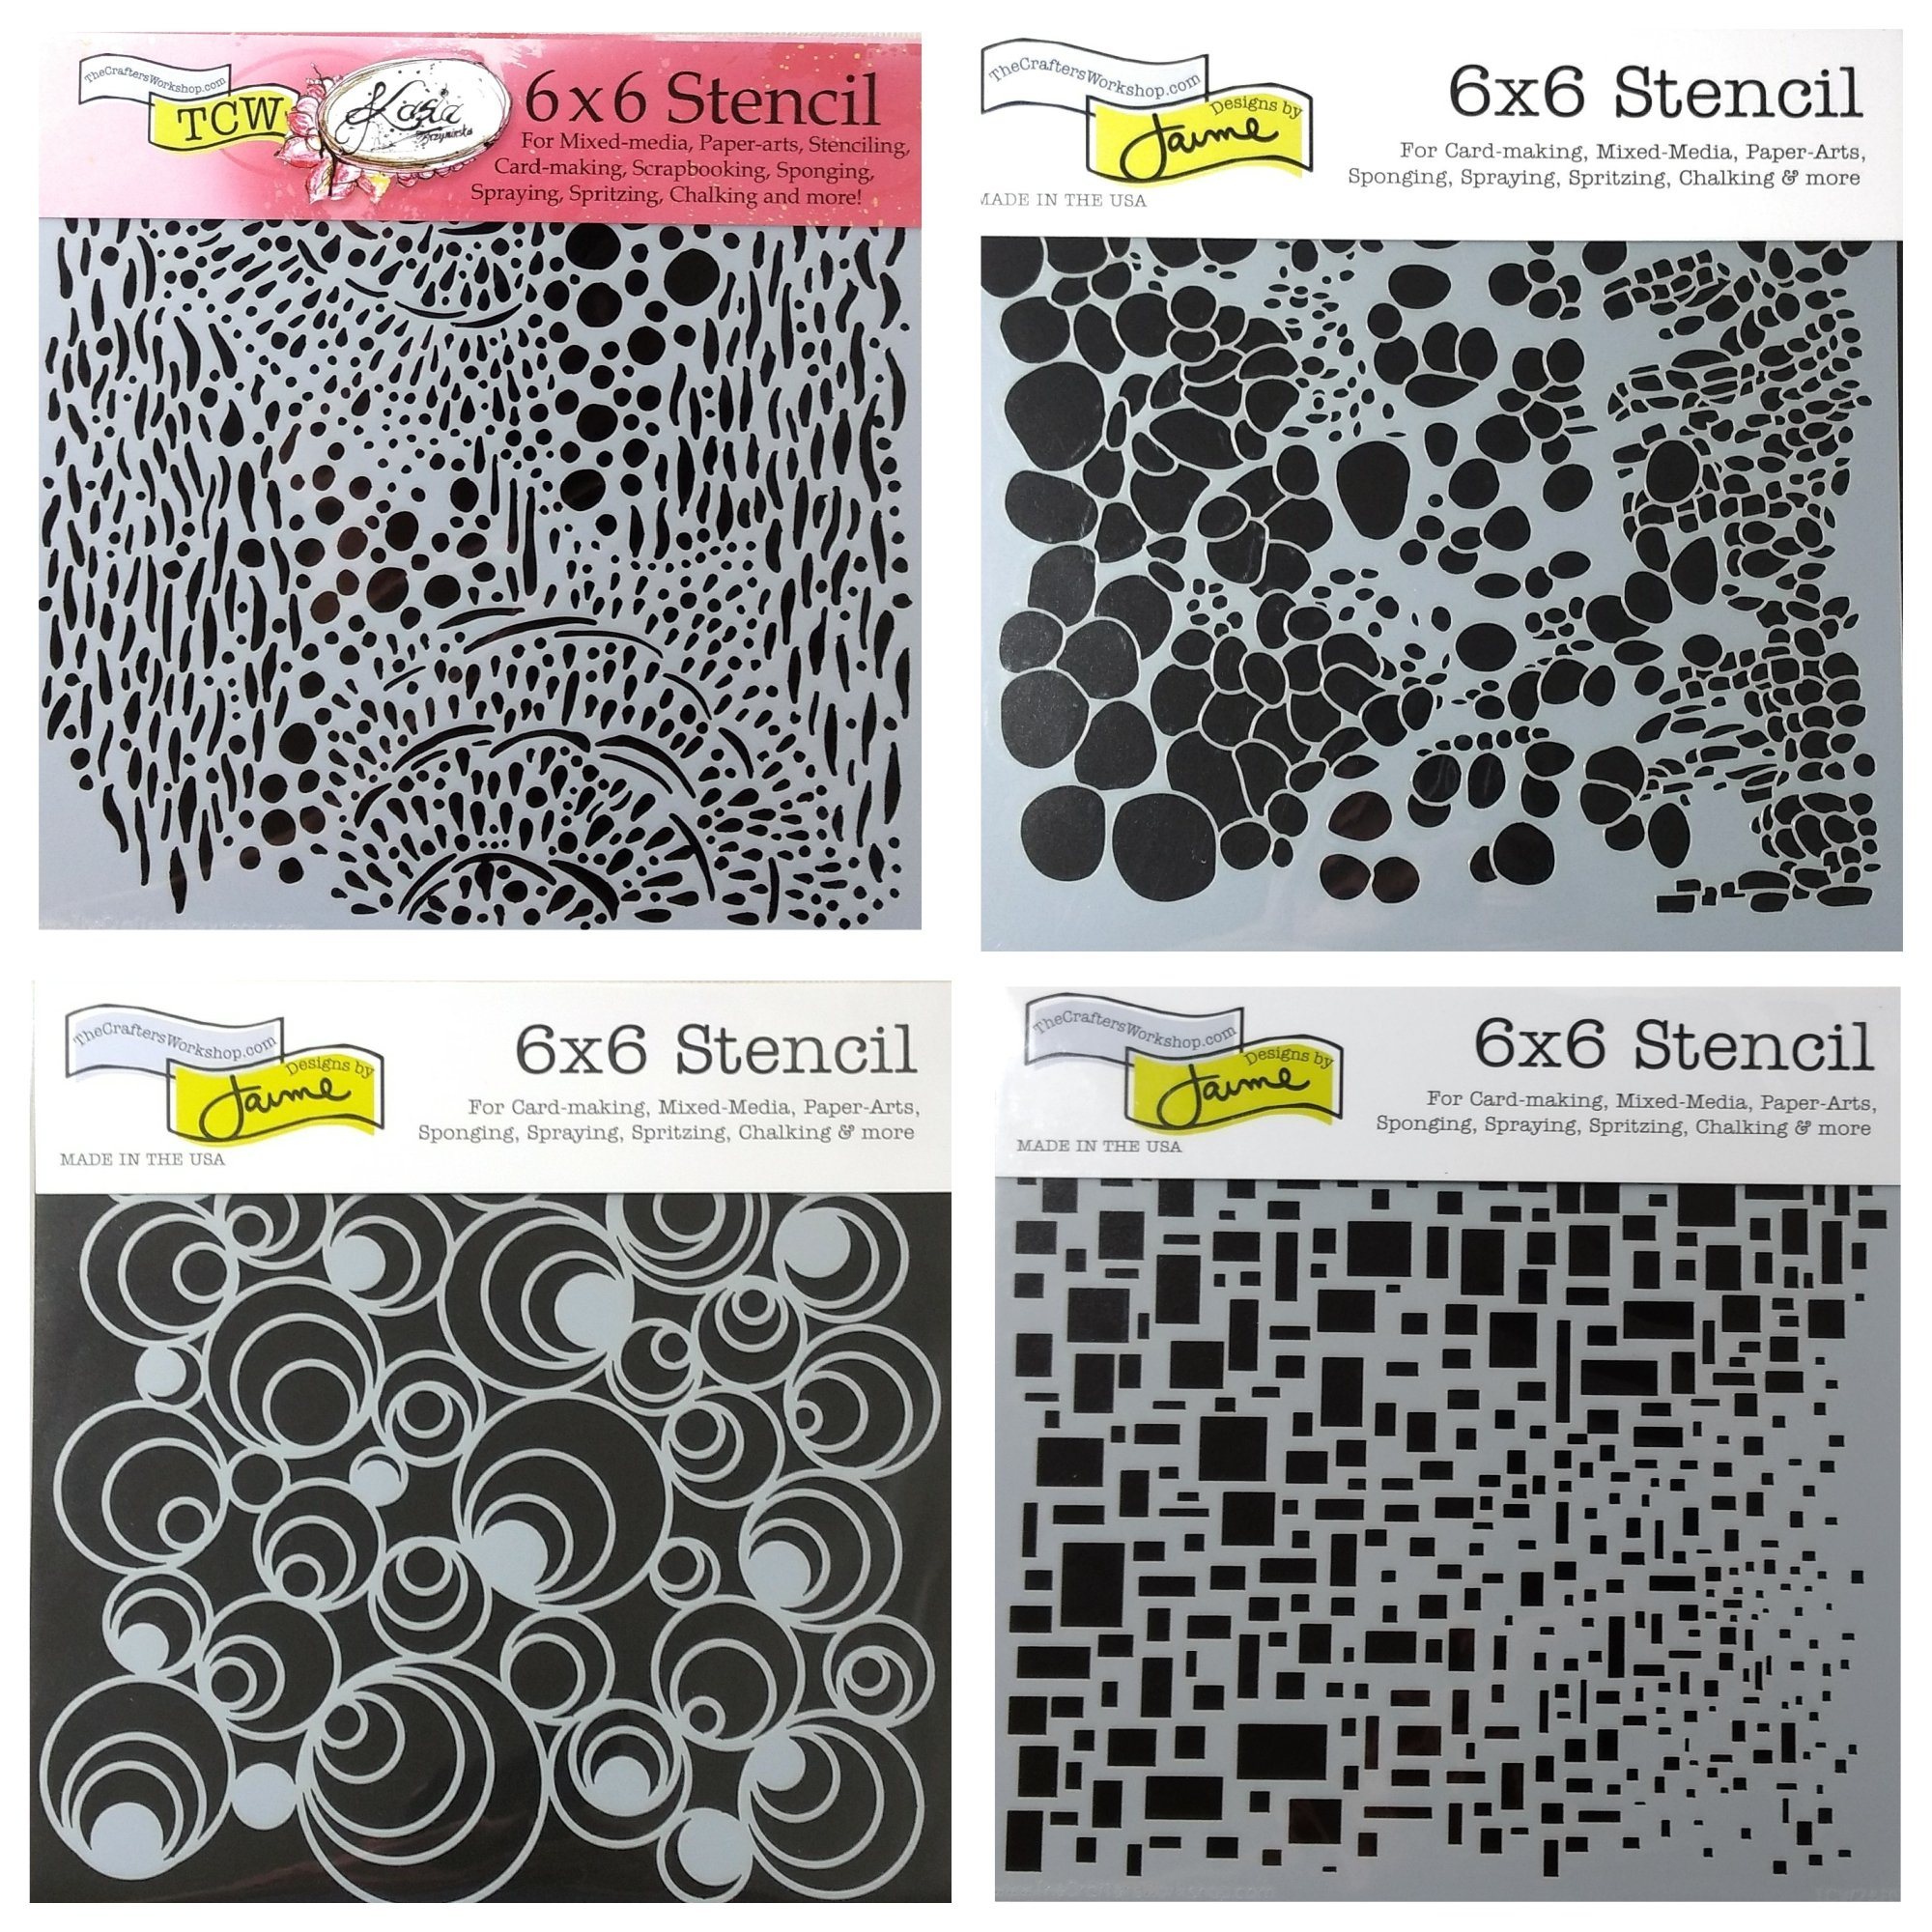 4 Crafters Workshop Mixed Media Stencils Set | for Arts, Card Making, Journaling, Scrapbooking | 6 inch x 6 inch Templates | Cell Theory, Mod Spirals, Cubist, Sea Bubbles by CRAFTERS WORKSHOP